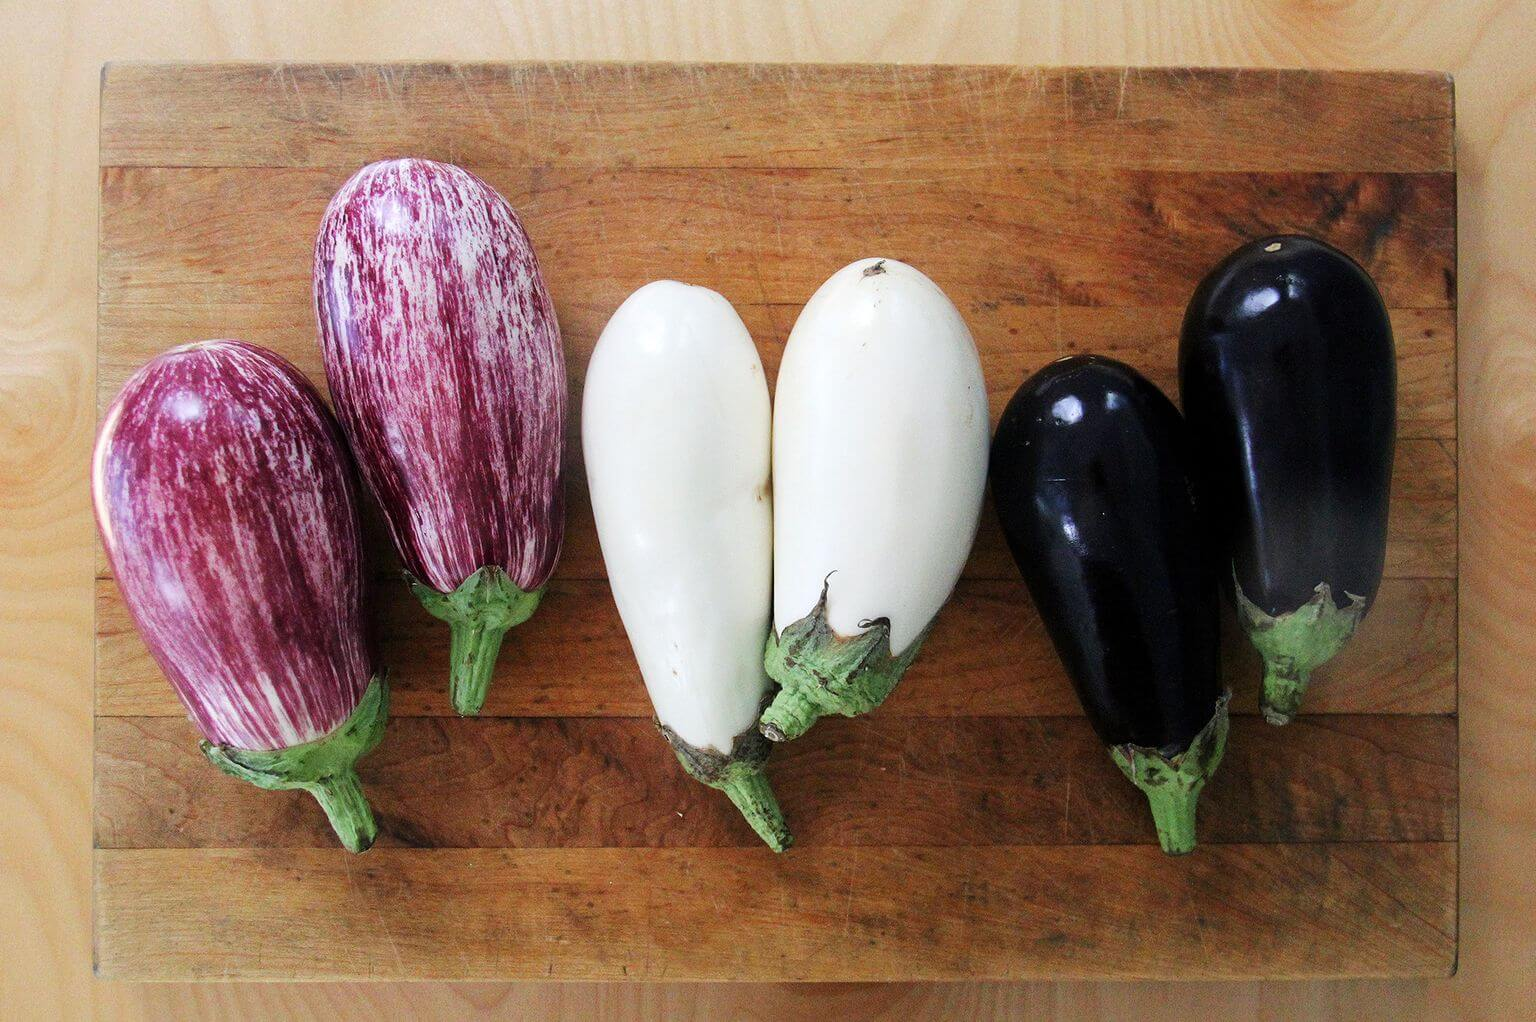 Eggplant on a board.